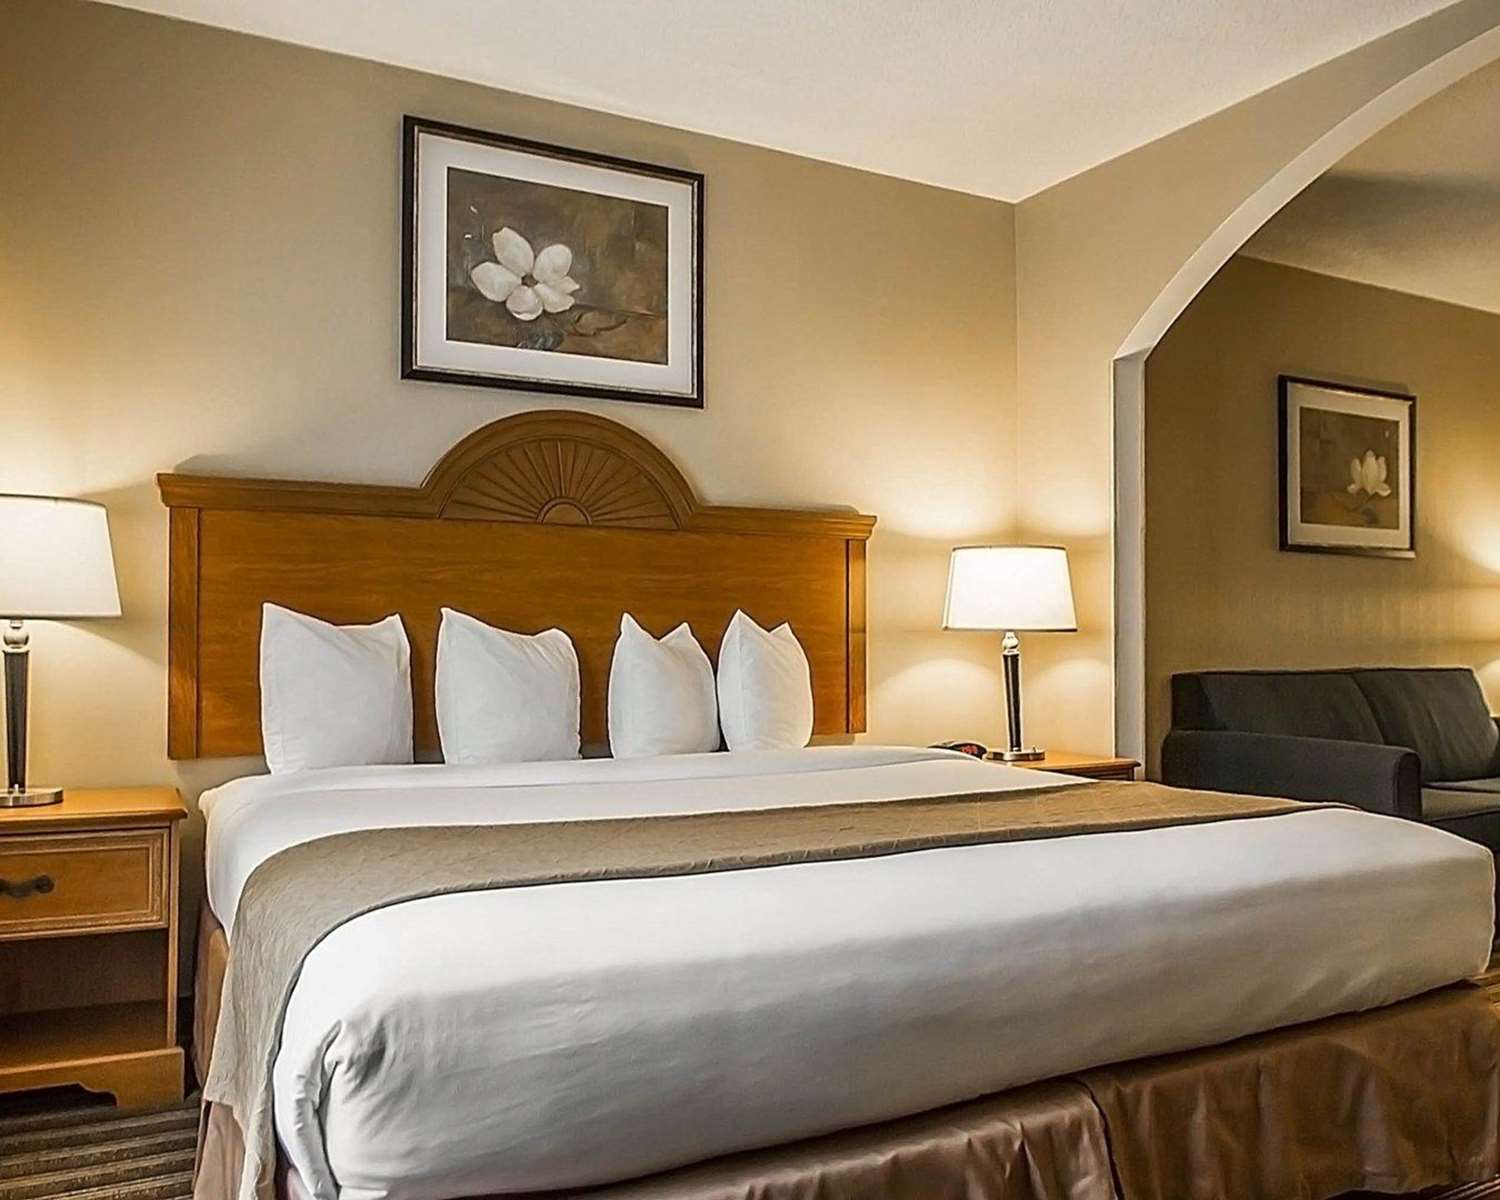 Quality Inn & Suites Fishkill, NY - See Discounts